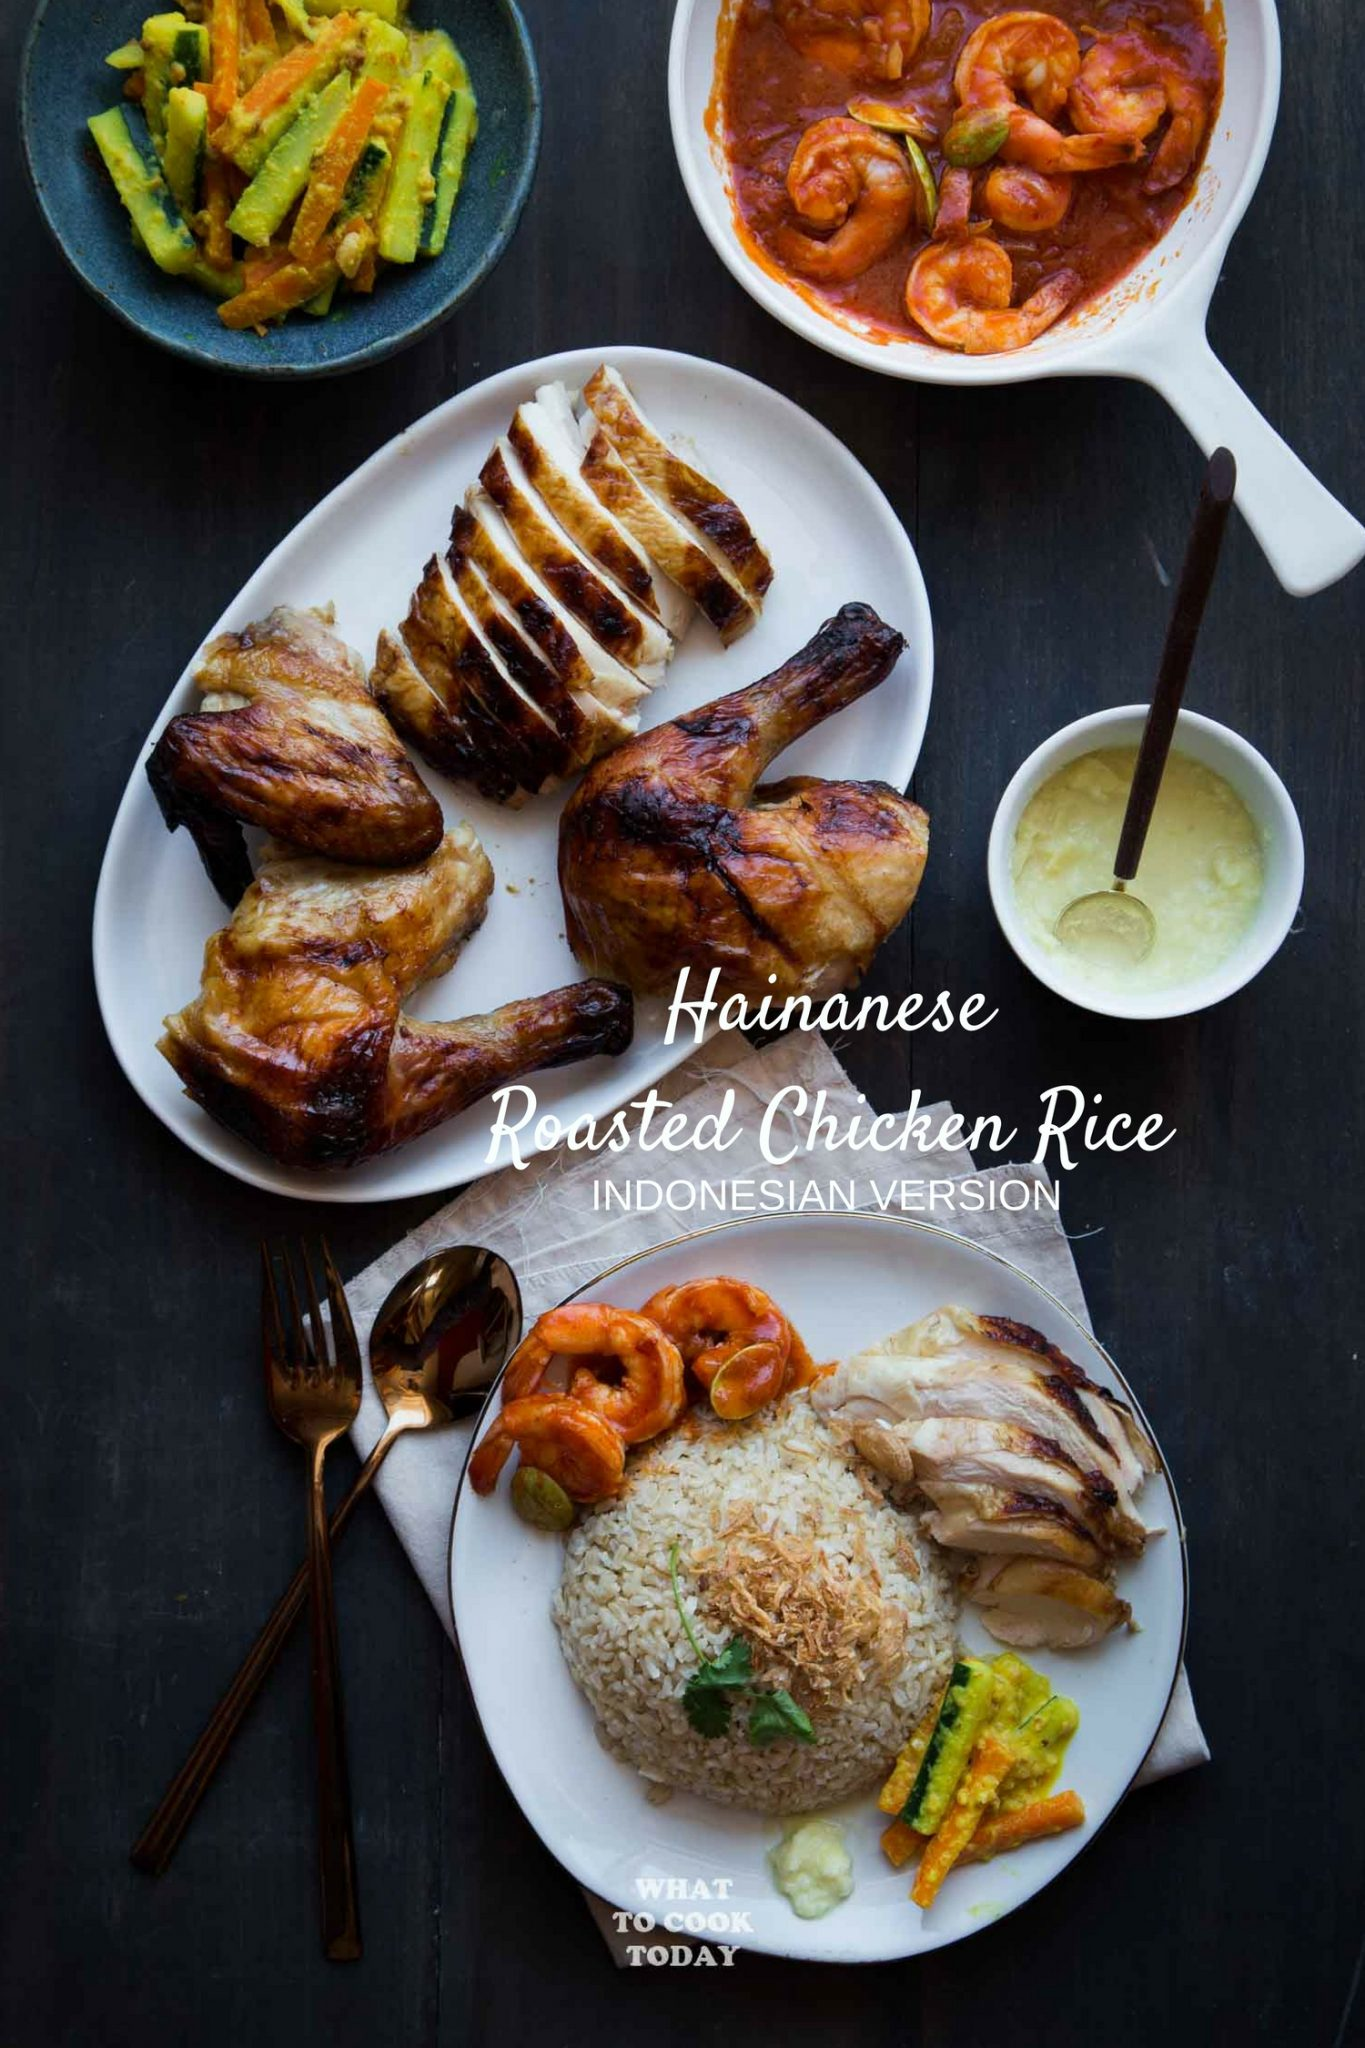 Nasi Hainam Medan / Medan-style Hainanese Chicken Rice. Roasted chicken is served with aromatic rice and other signature Indonesian-Chinese side dishes and entrees that make it uniquely Medan-style Hainanese Roasted Chicken Rice #chickenrice #hainanese #medanfood